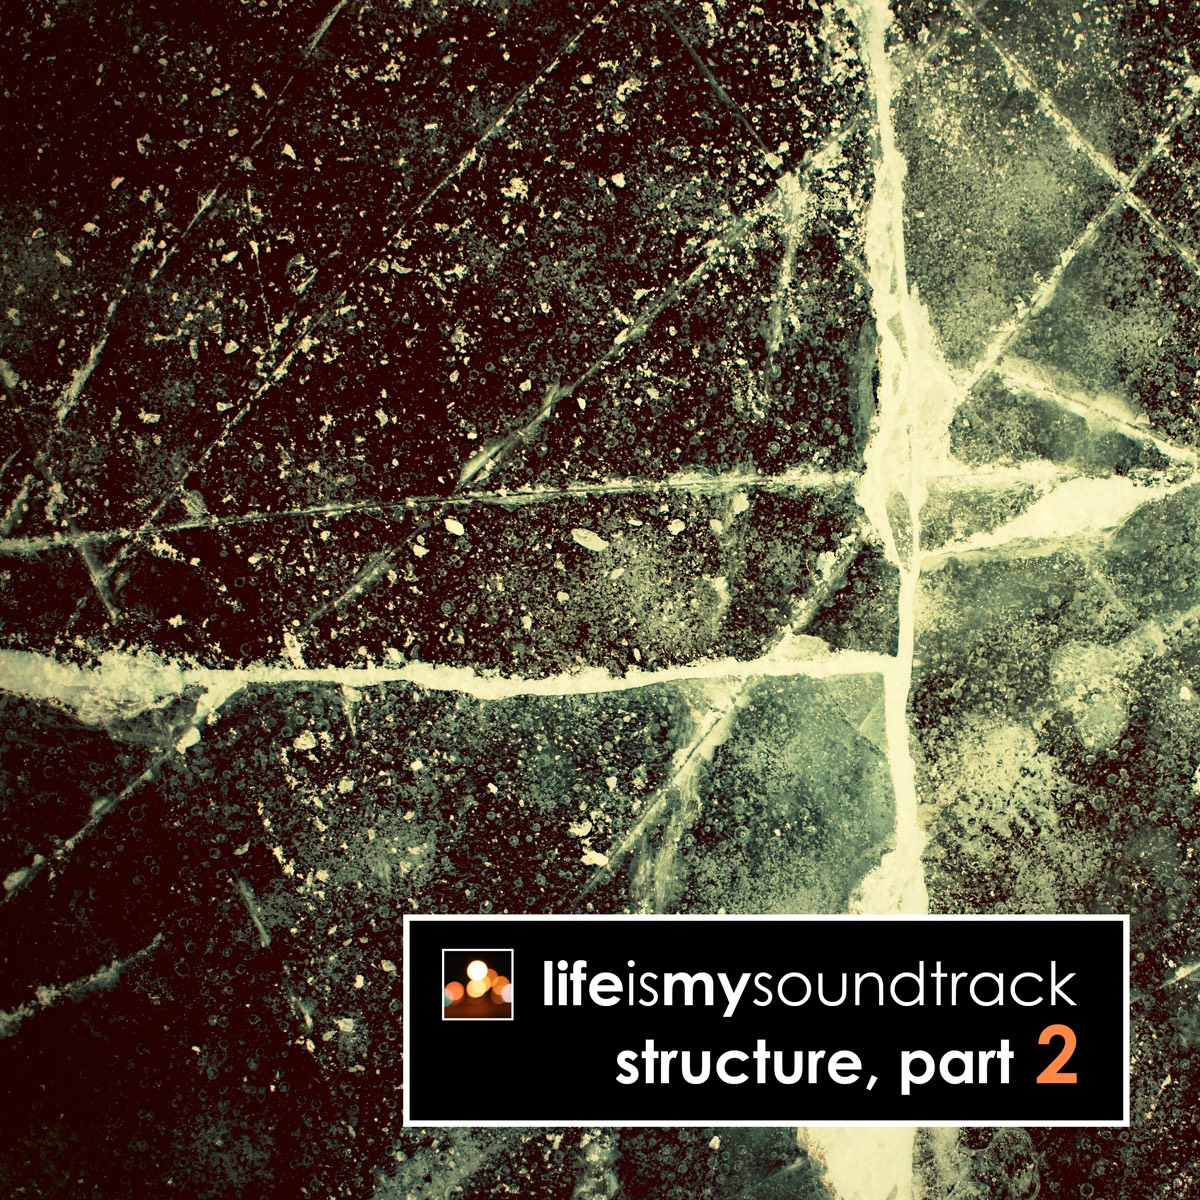 The album Structure, Part 2 by Life Is My Soundtrack - Part 2 of a collection of minimal, electronic songs